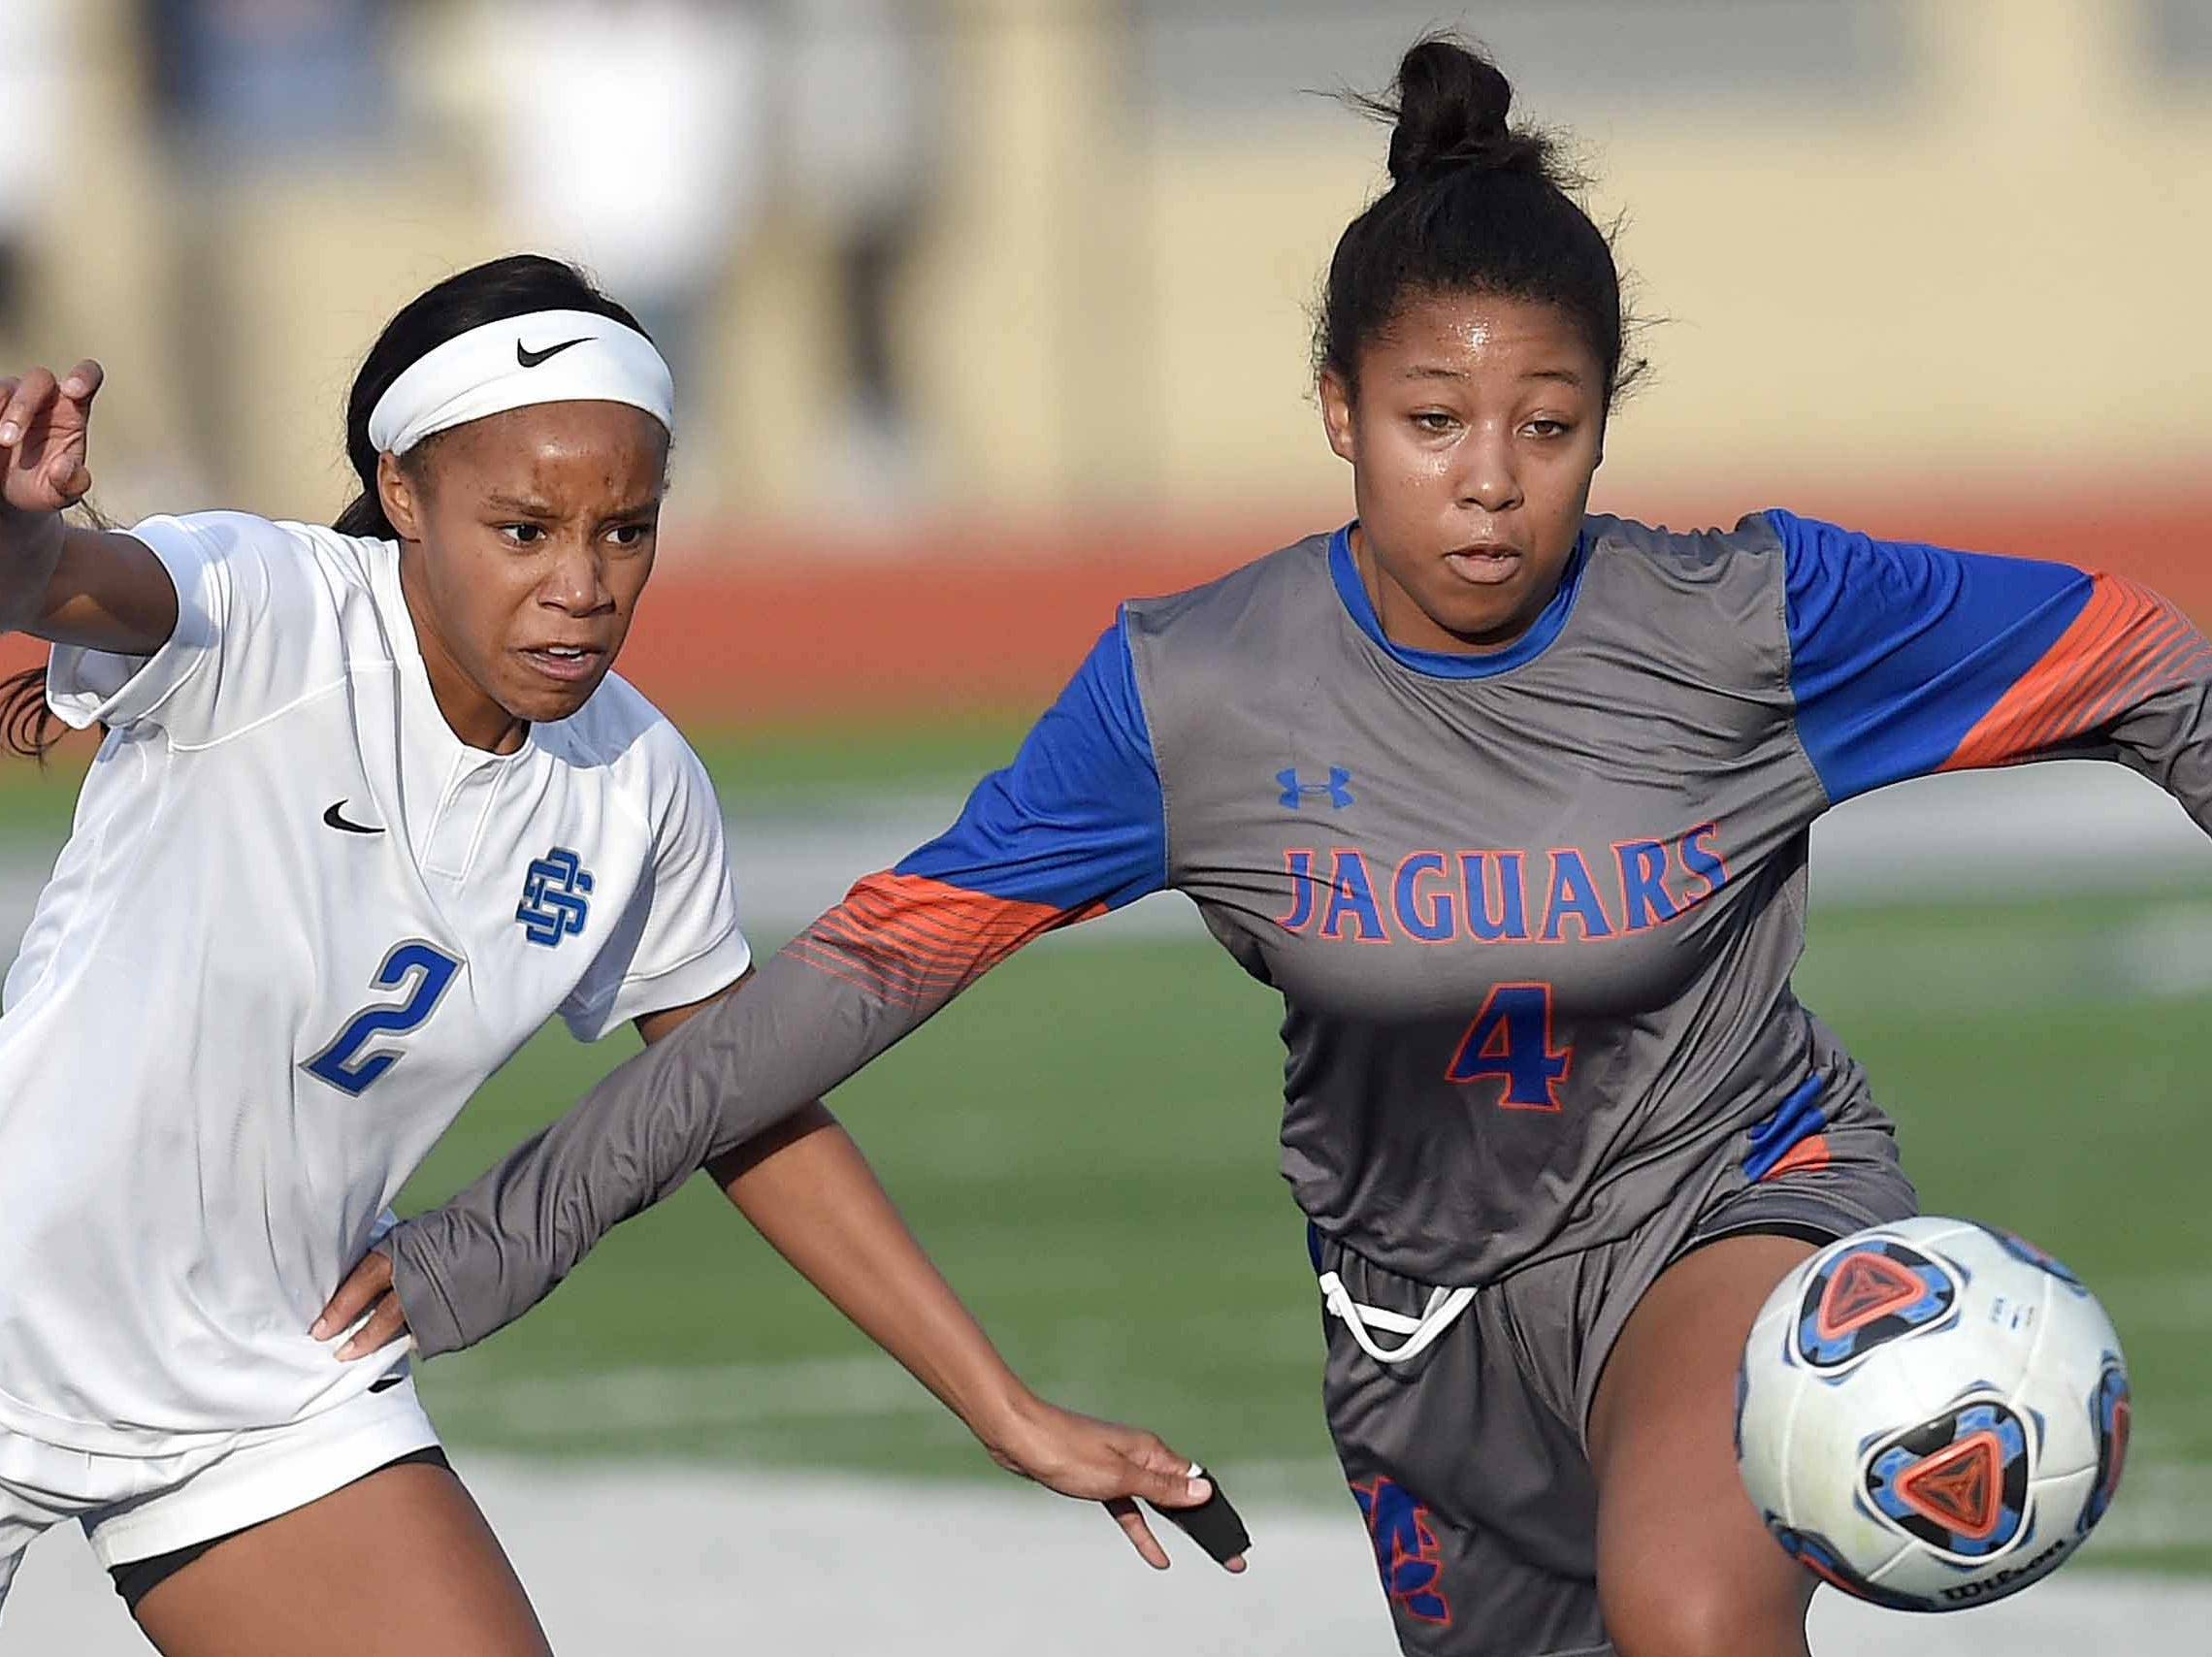 Madison Central's Elaysha Travis (4) goes after the ball against Ocean Springs' Kinsley Harmon (2) in the Class 6A state championship in the MHSAA BlueCross Blue Shield of Mississippi Soccer Classic on Saturday, February 9, 2019, at Ridgeland High School in Ridgeland, Miss.